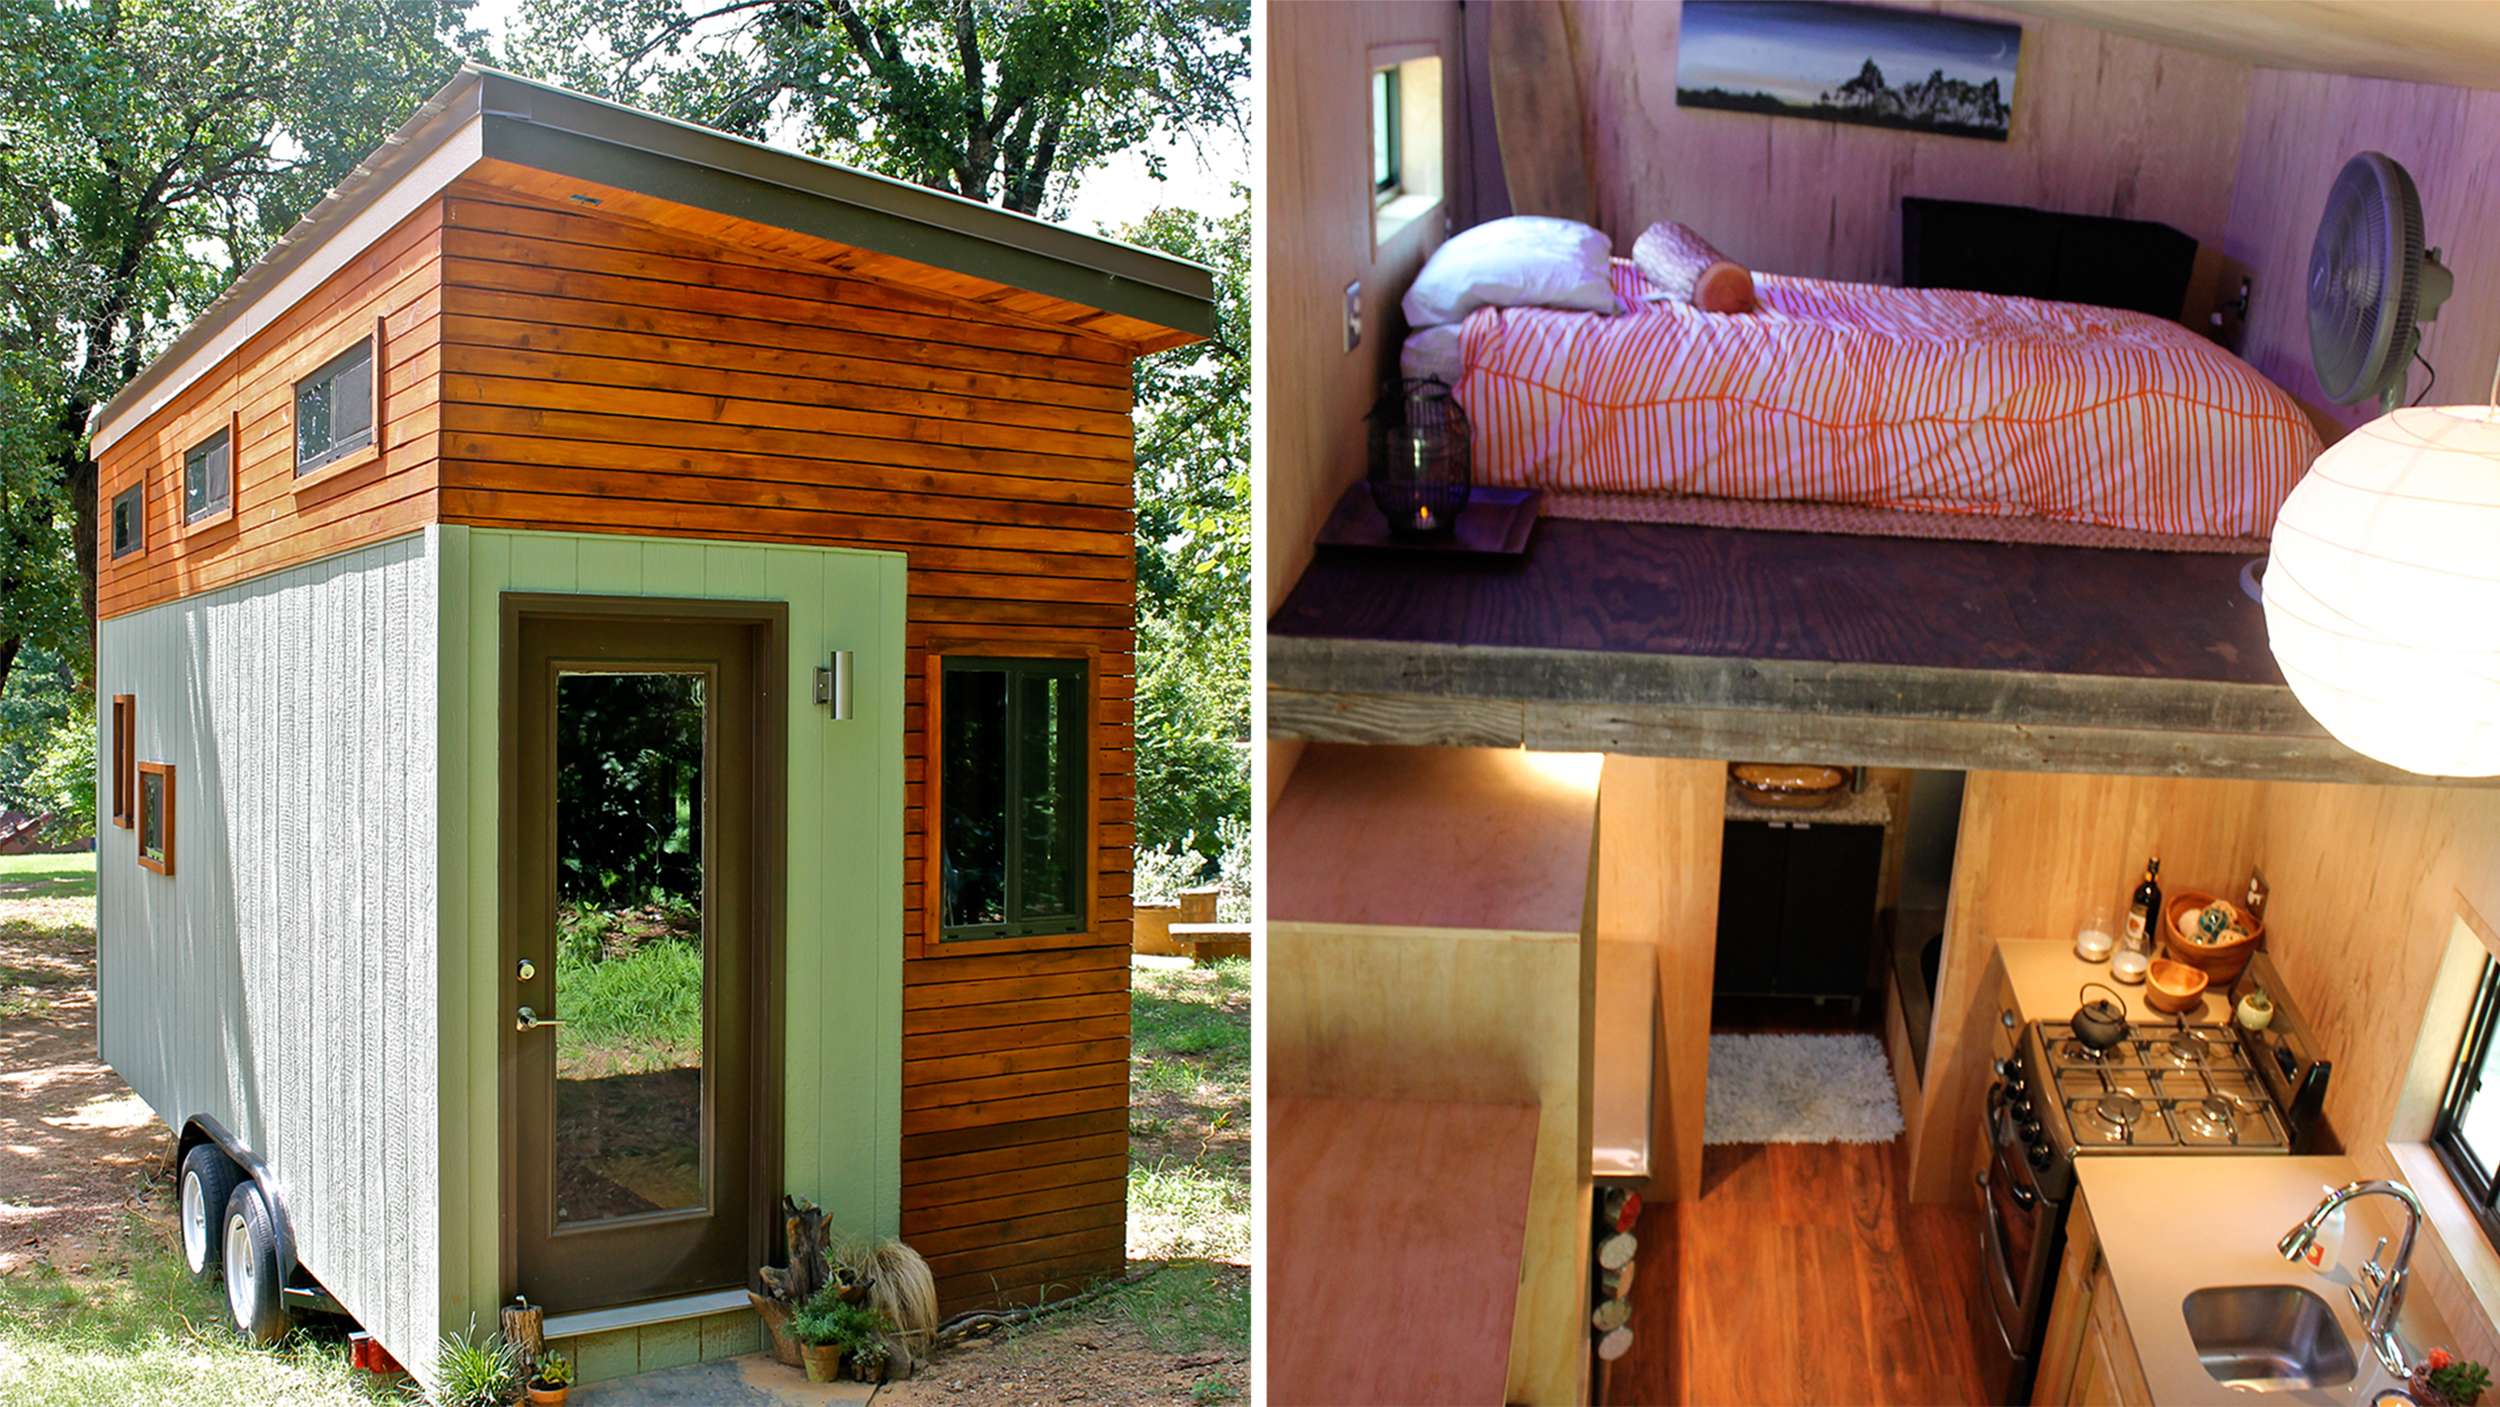 Tiny Home Designs: College Student Builds Tiny Home To Graduate Debt-free